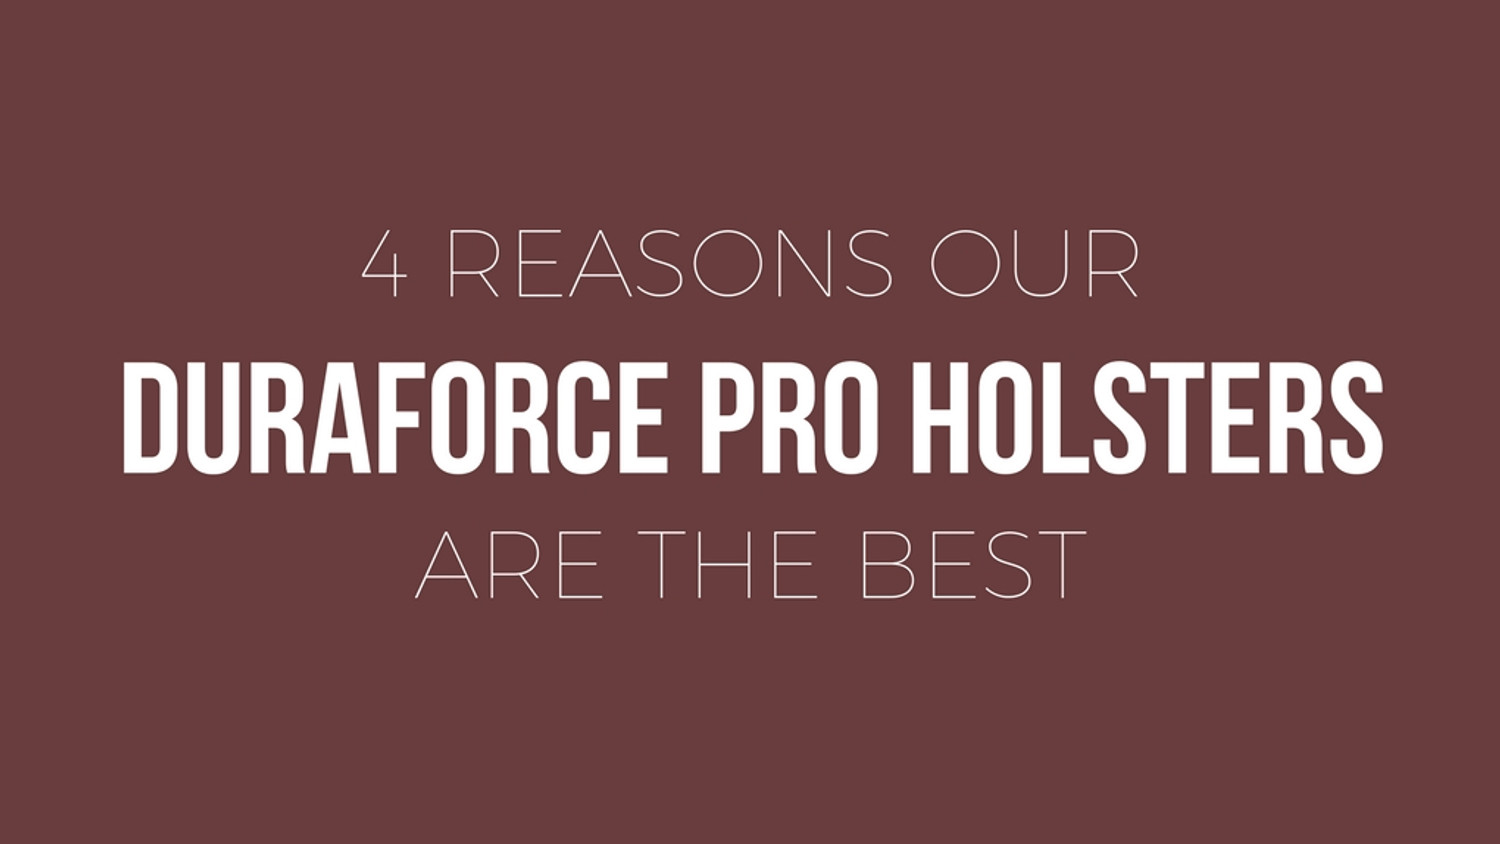 ​4 Reasons Our Duraforce Pro Holsters are the Best